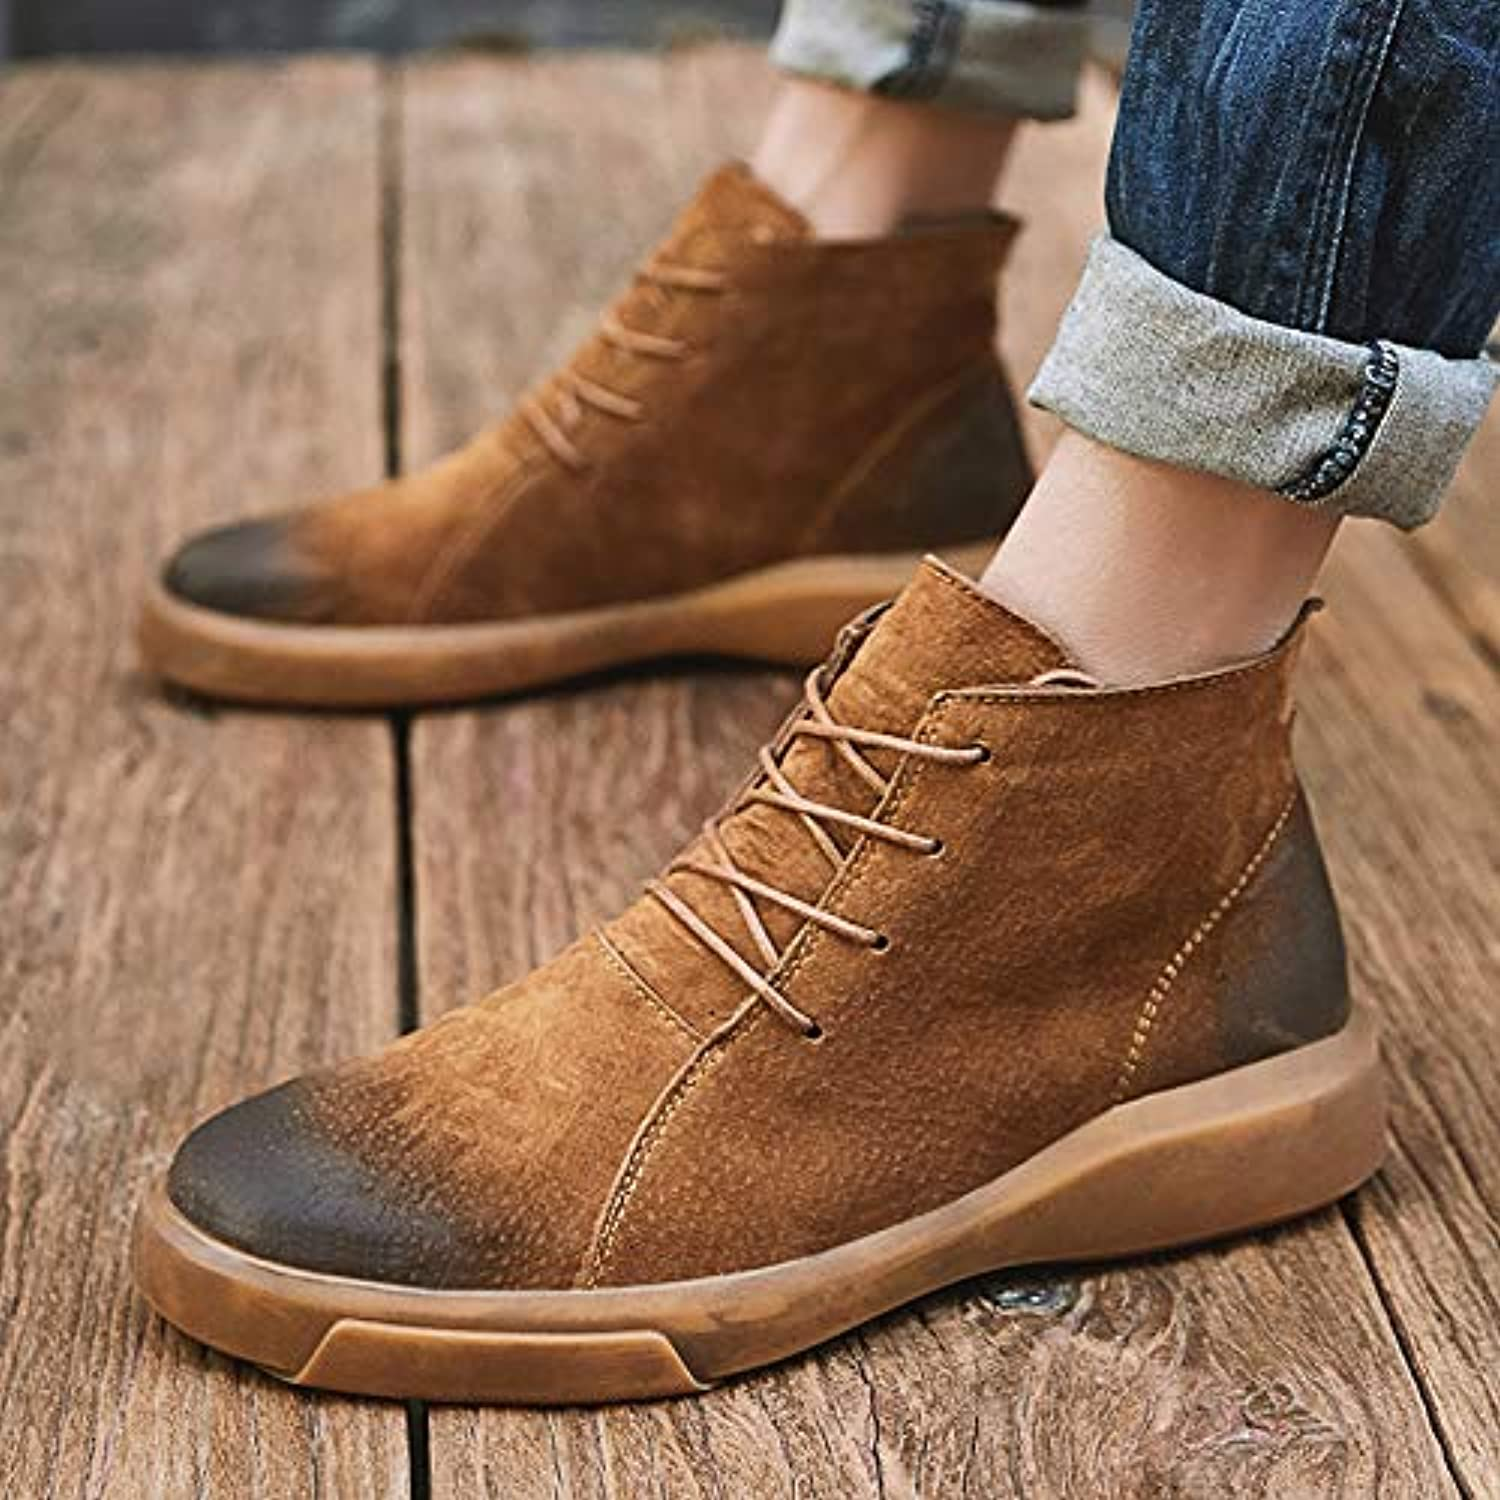 Shukun Men's boots Winter Men'S Boots Casual shoes High To Help Retro Leather Boots Cotton Wild Martin Boots Men'S shoes